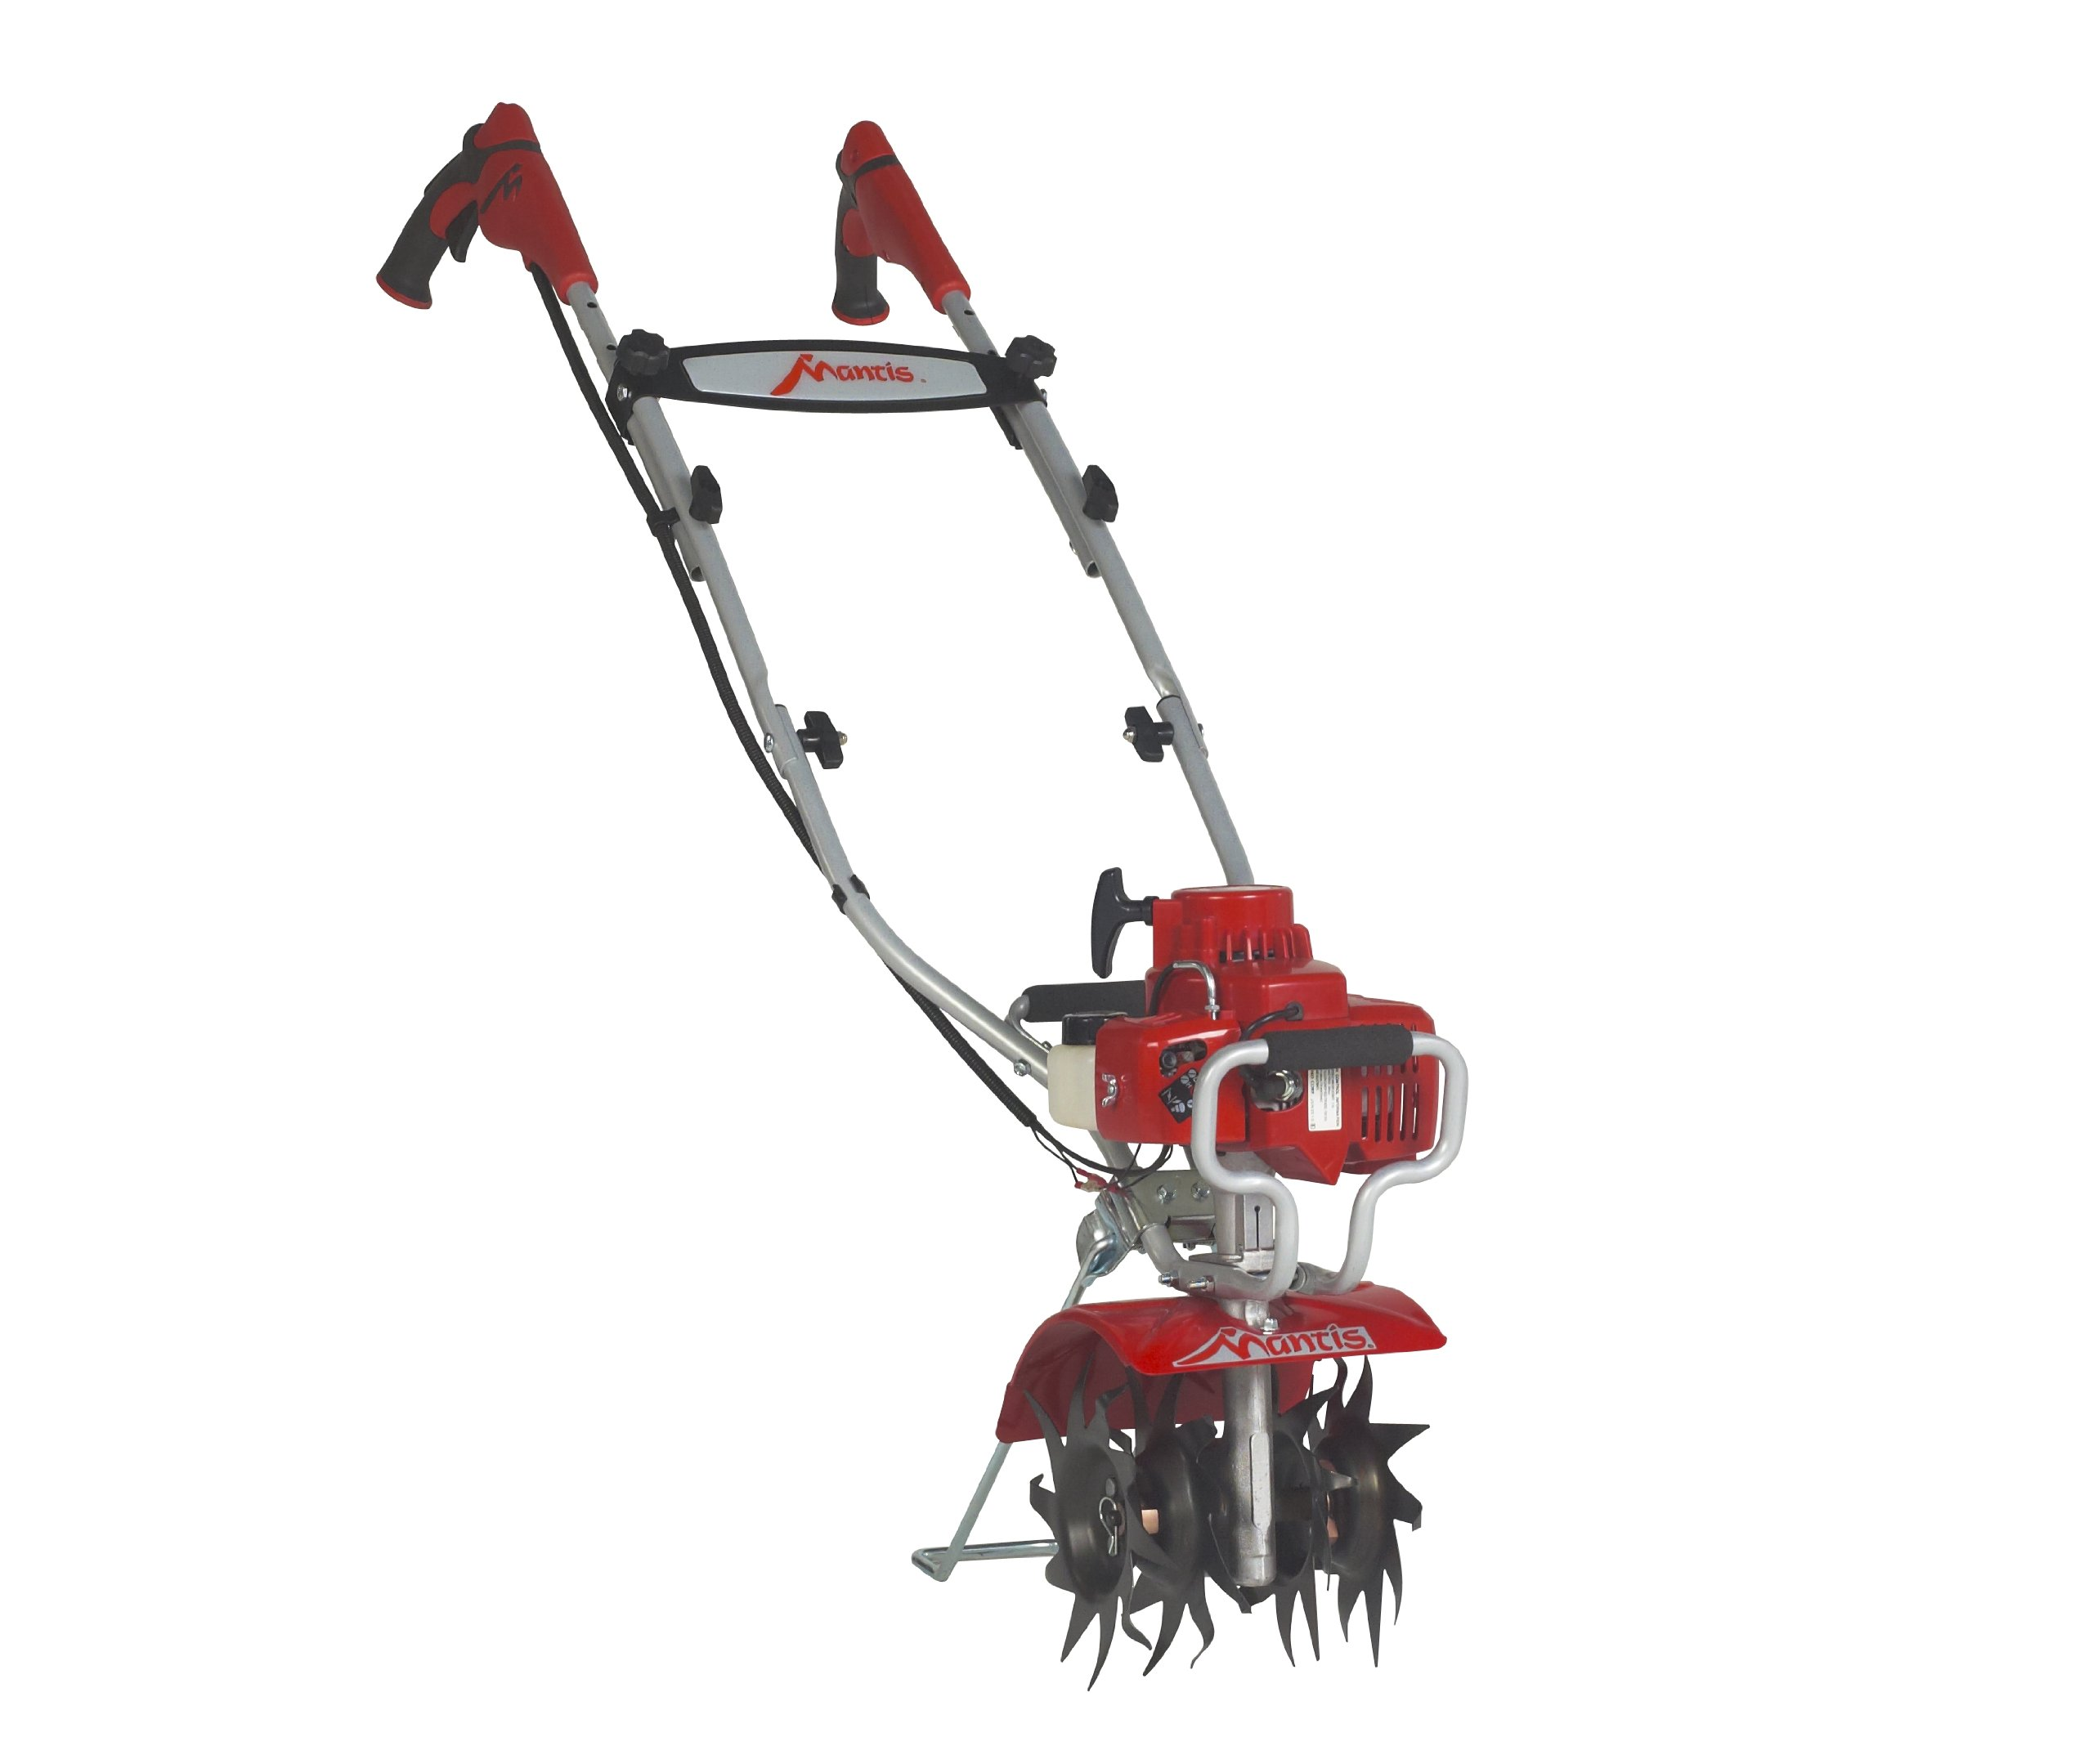 Get Quotations · Mantis 7234-12-02 Deluxe 2-Cycle Tiller with Kickstand